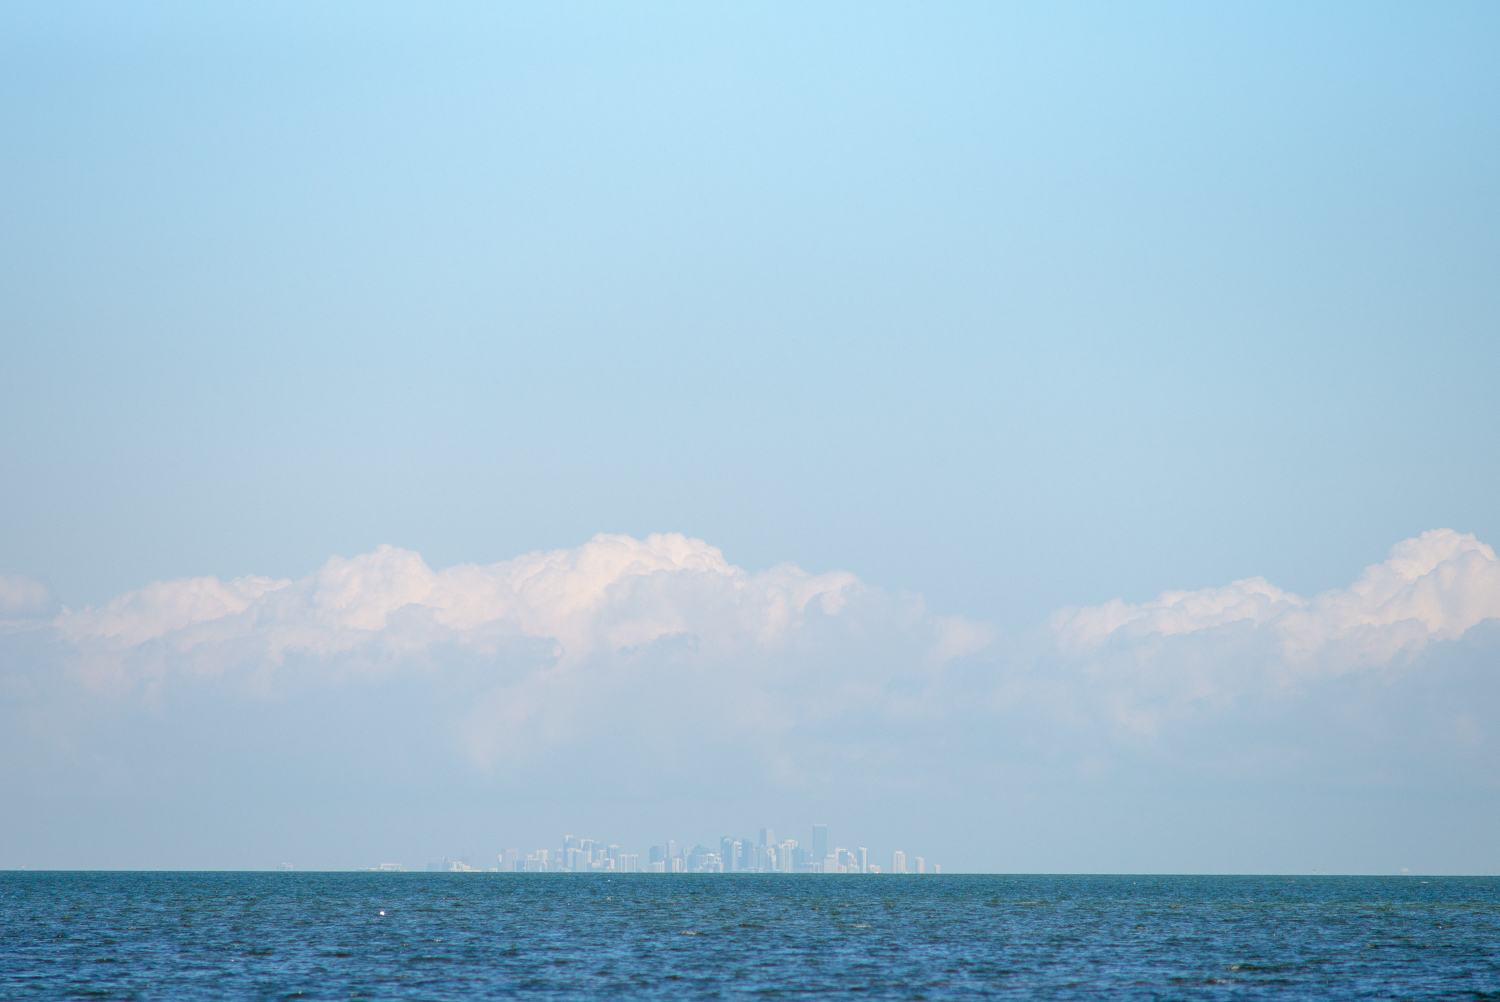 Miami from Biscayne National Park